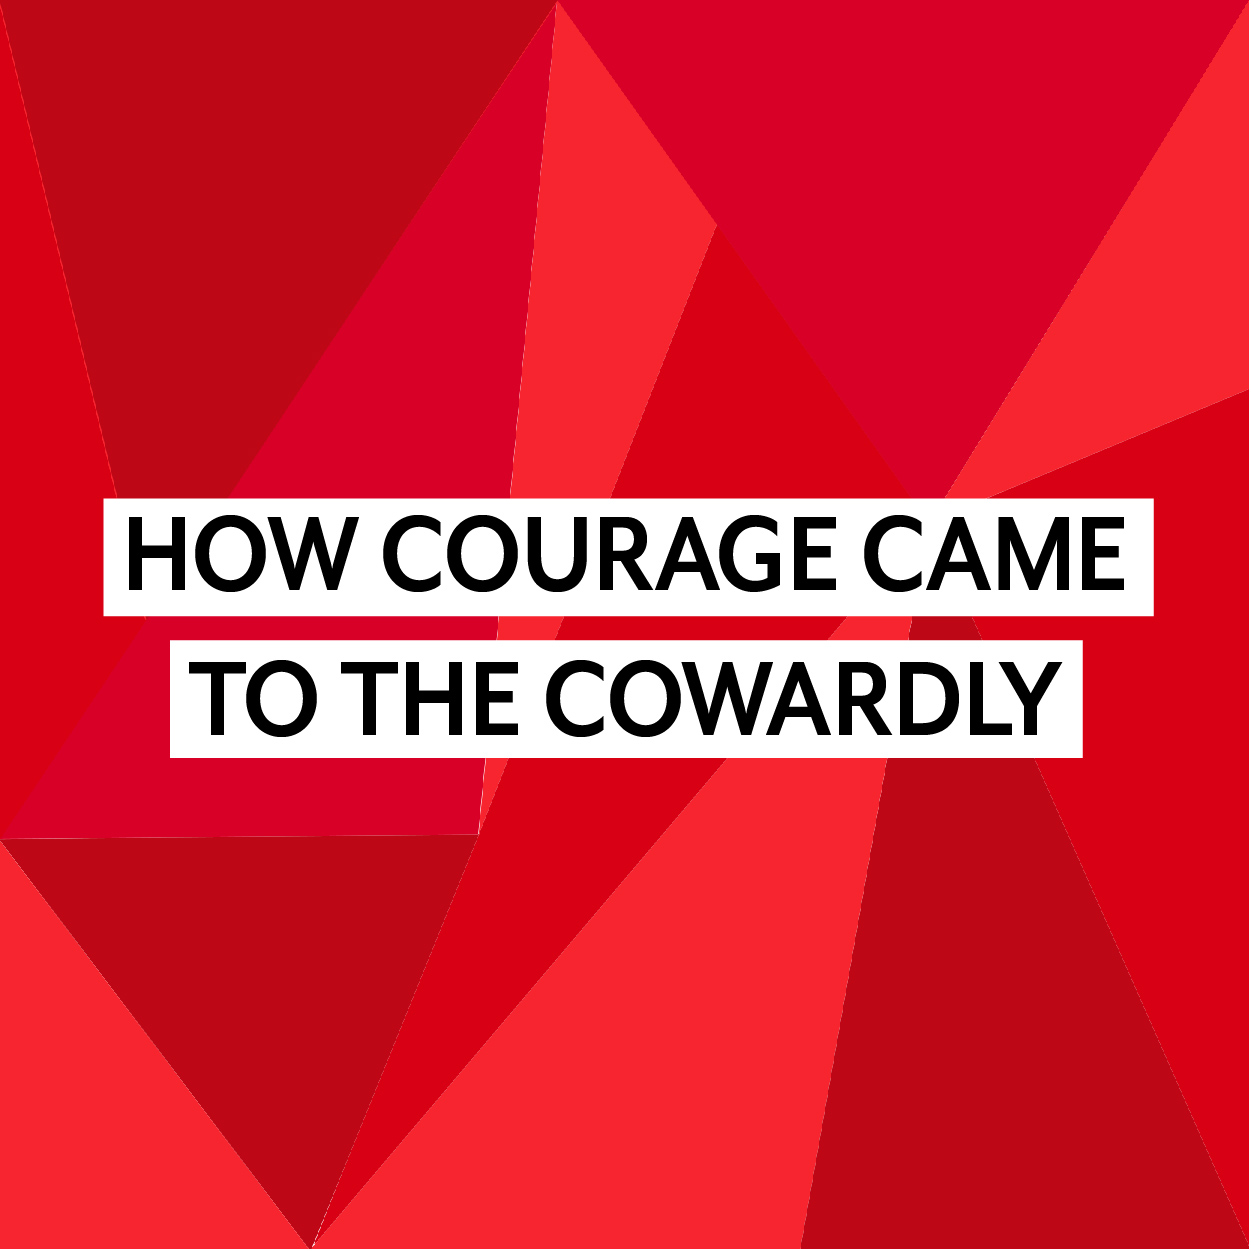 How Courage Came to the Cowardly-01.jpg